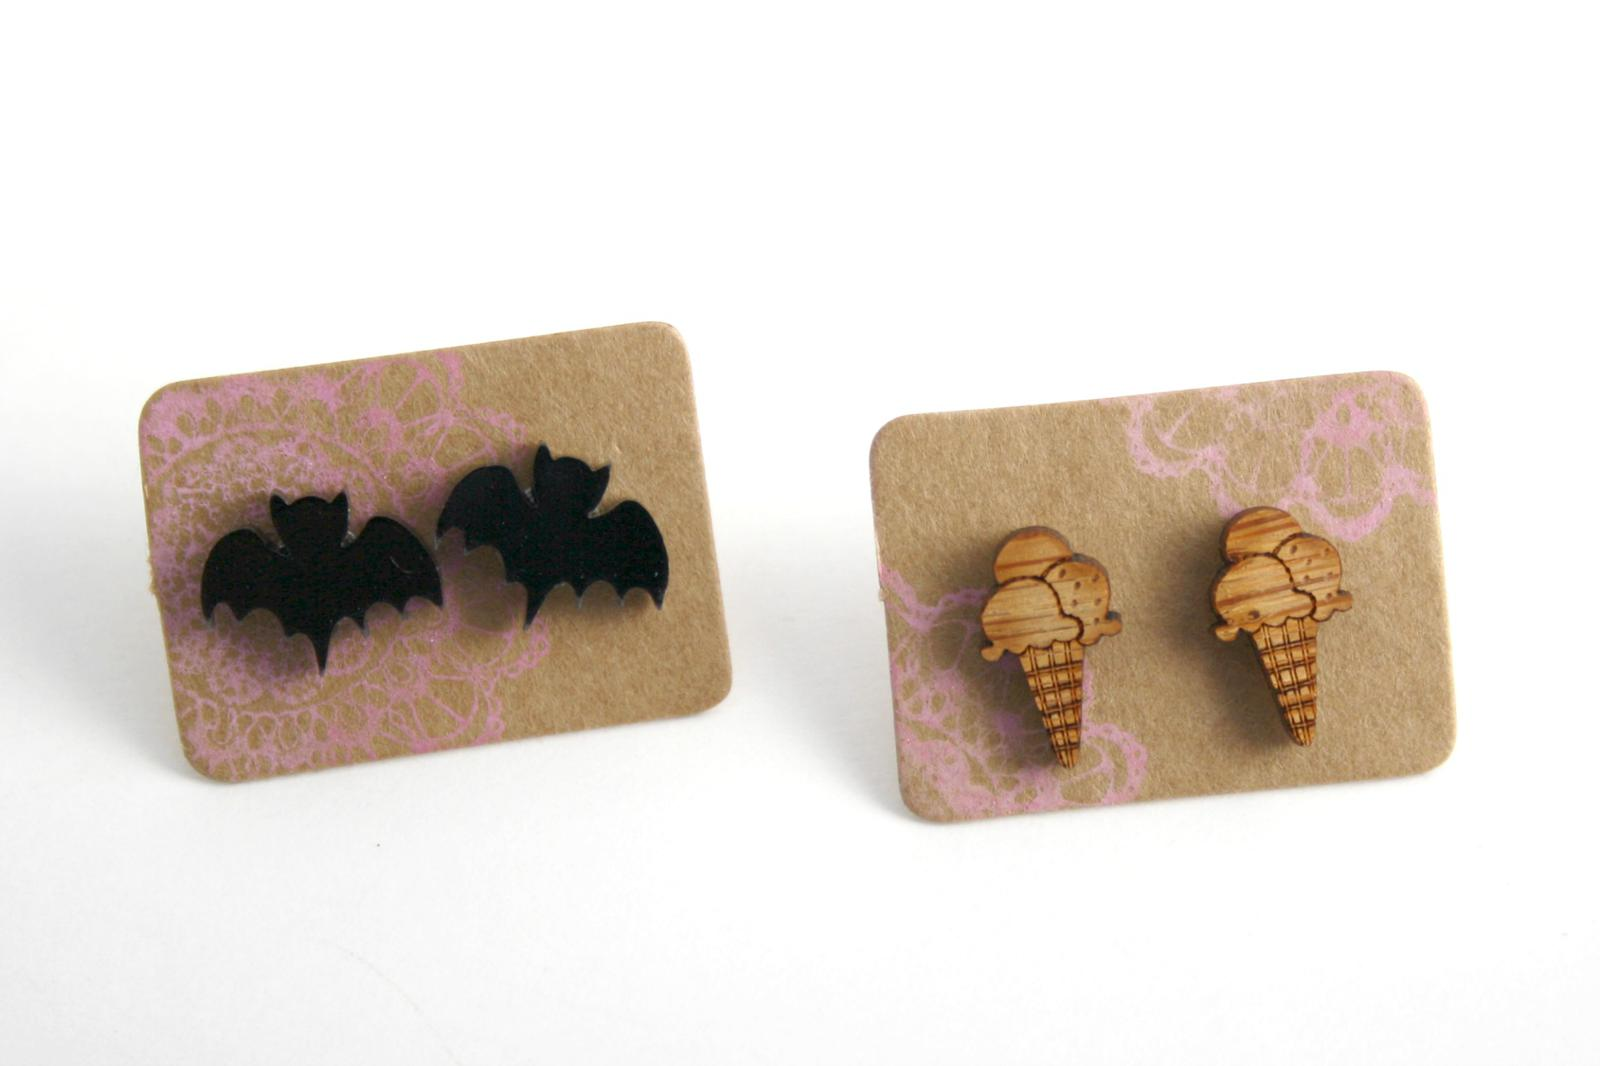 Bat and Icecream earrings